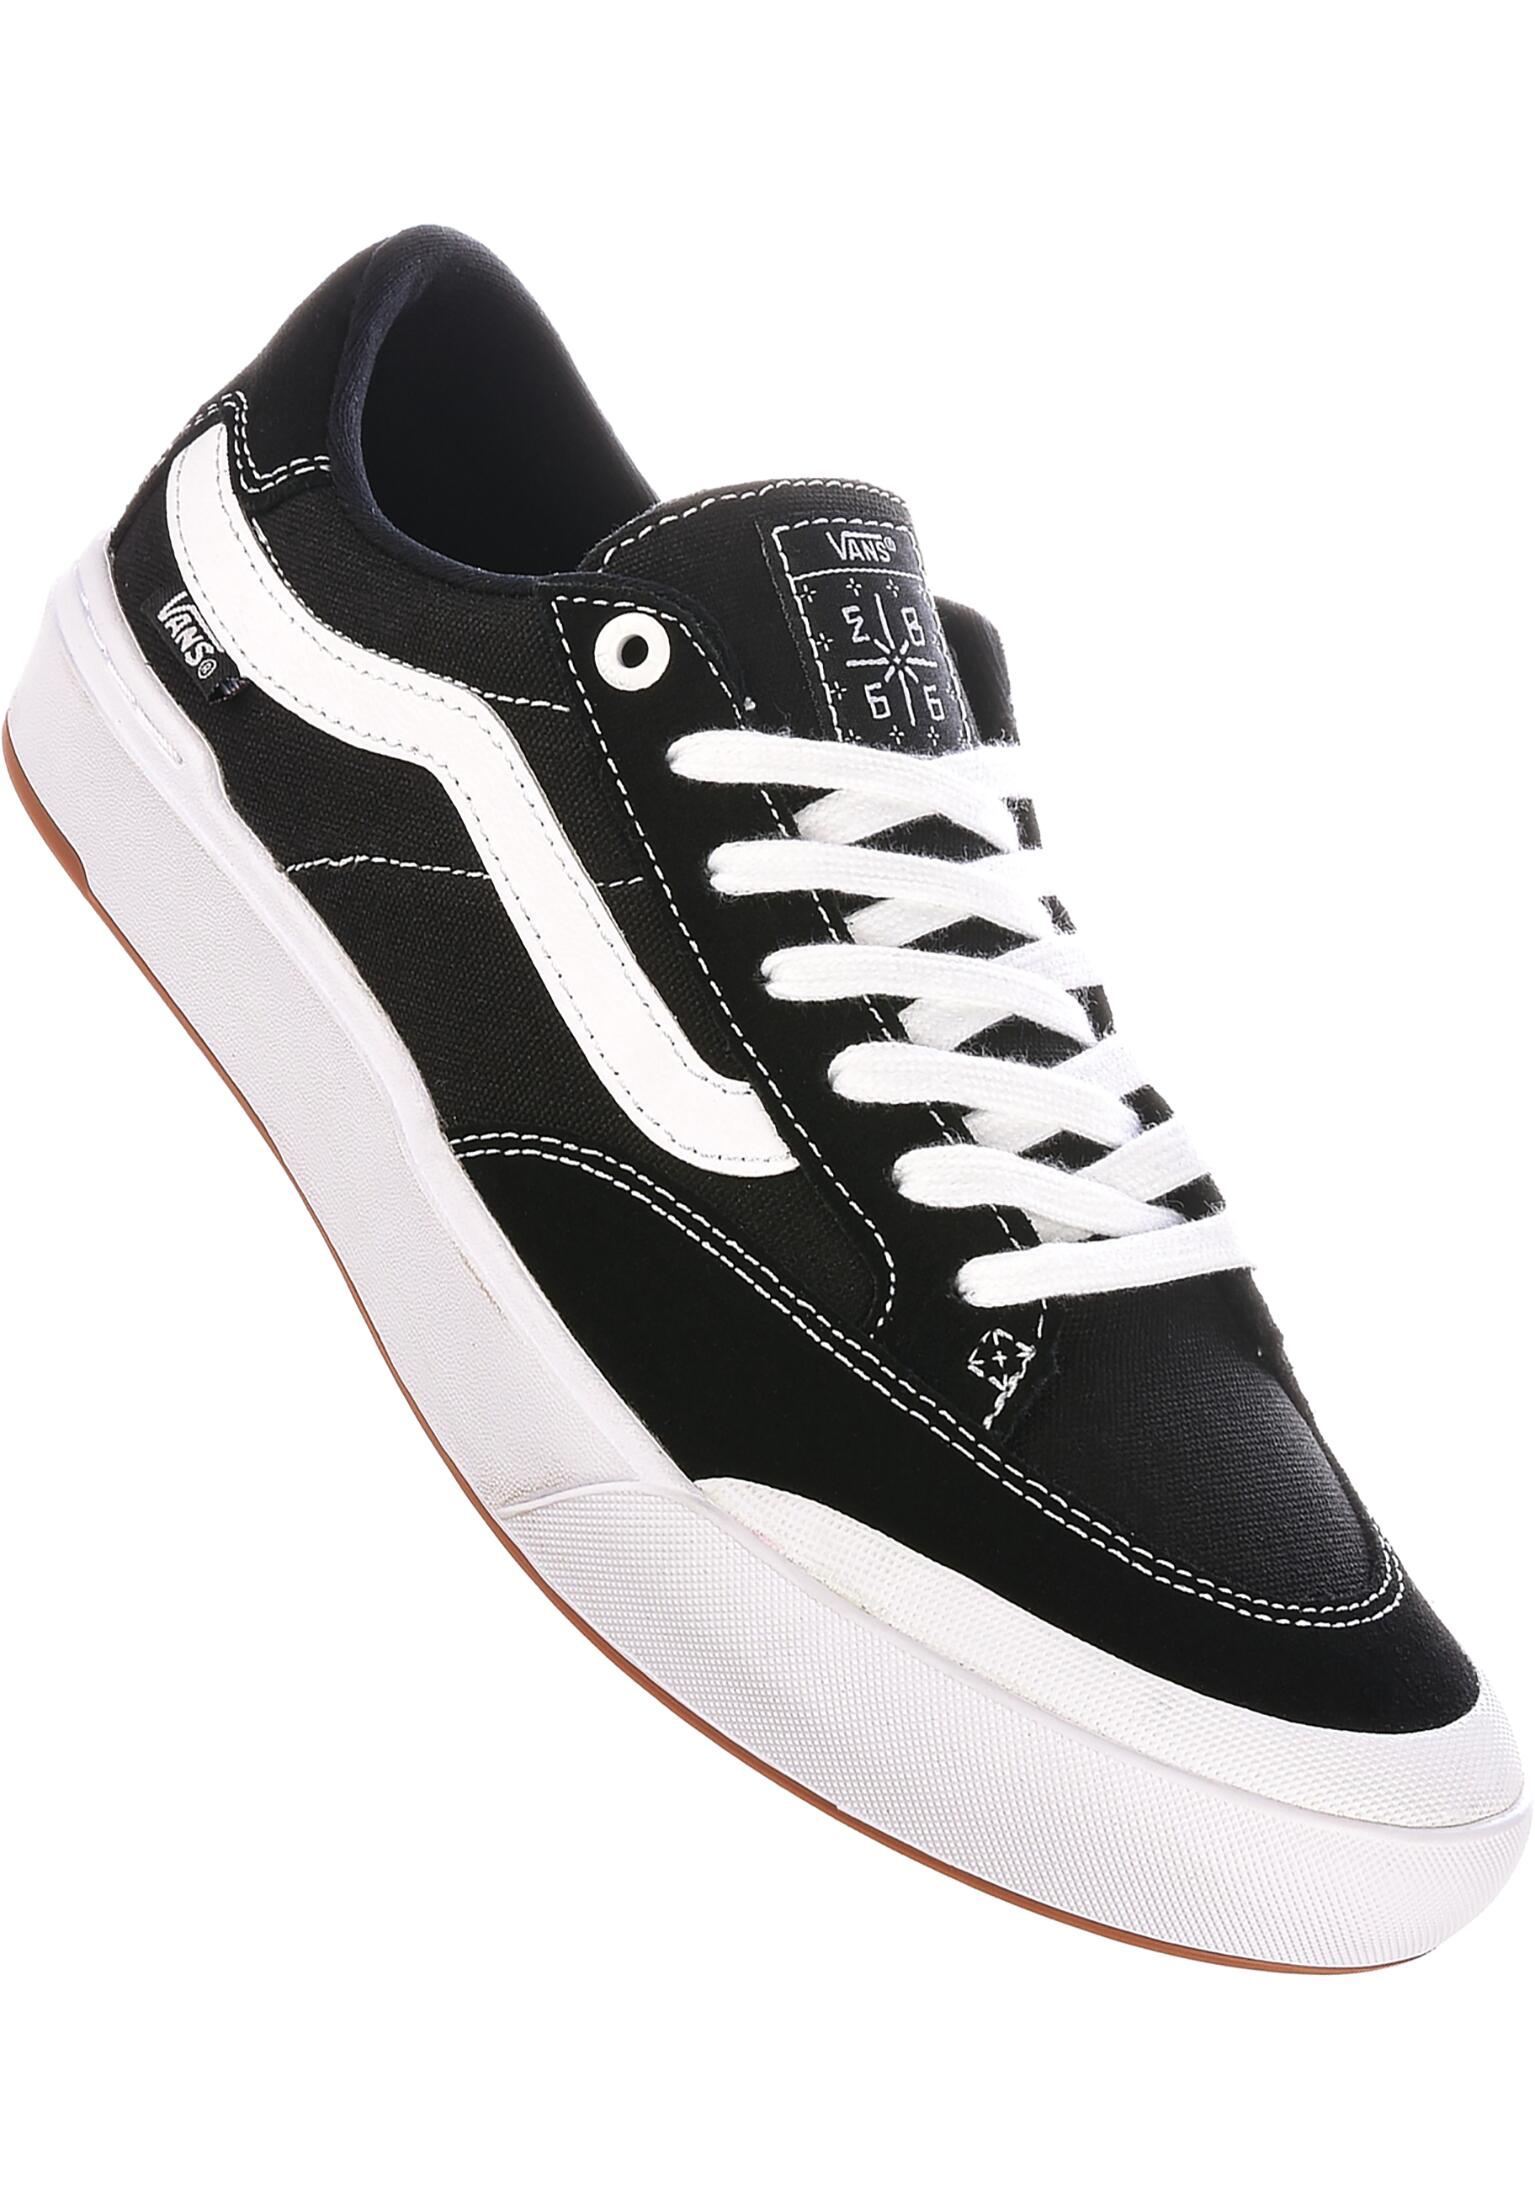 bbb9f45328d Berle Pro Vans All Shoes in black-white for Men